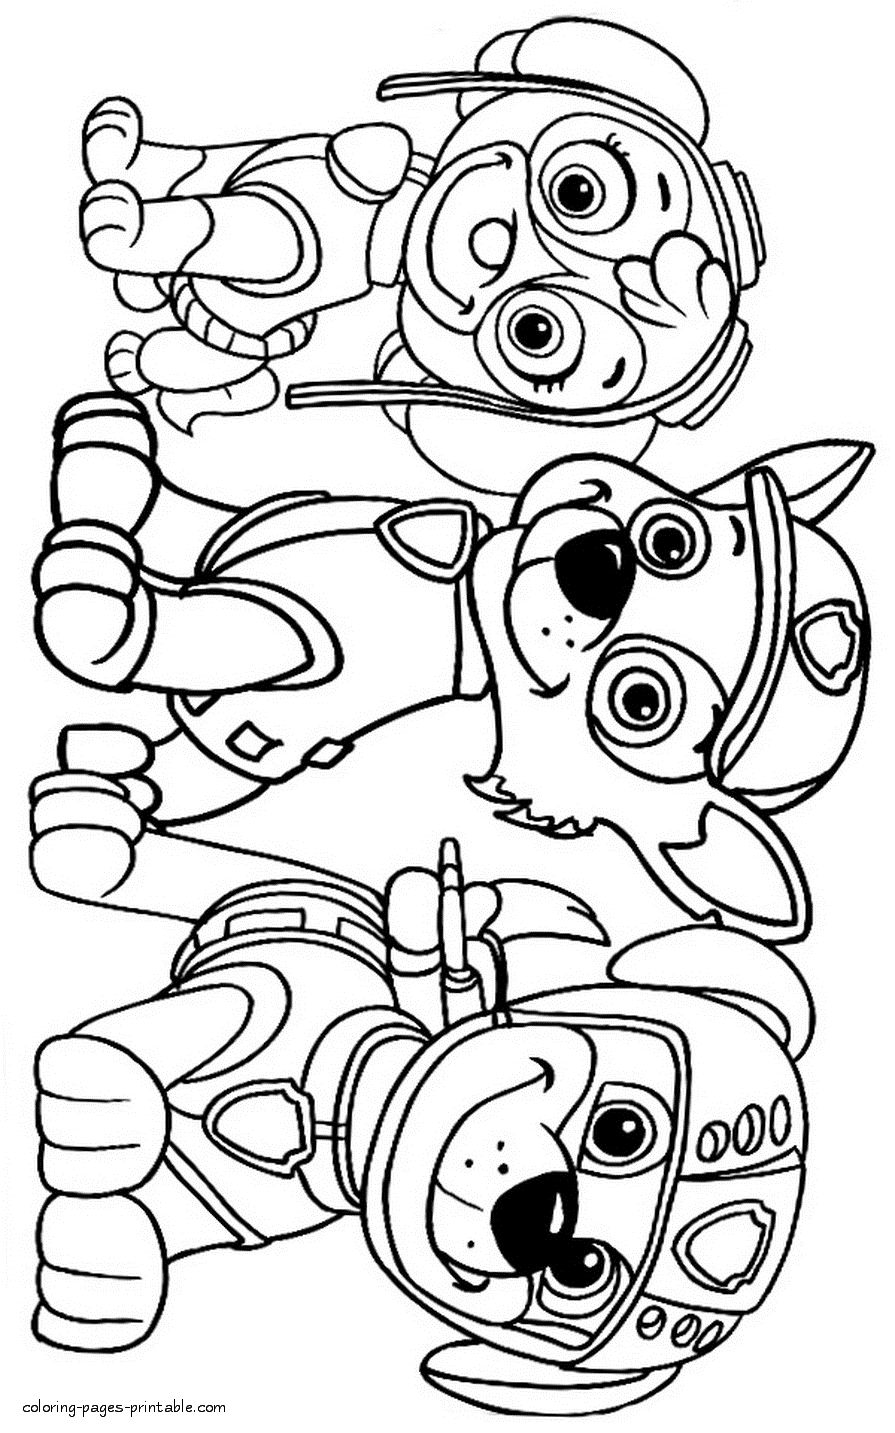 paw patrol free coloring pages printable paw patrol coloring pages printable 25 print color craft printable coloring patrol paw free pages